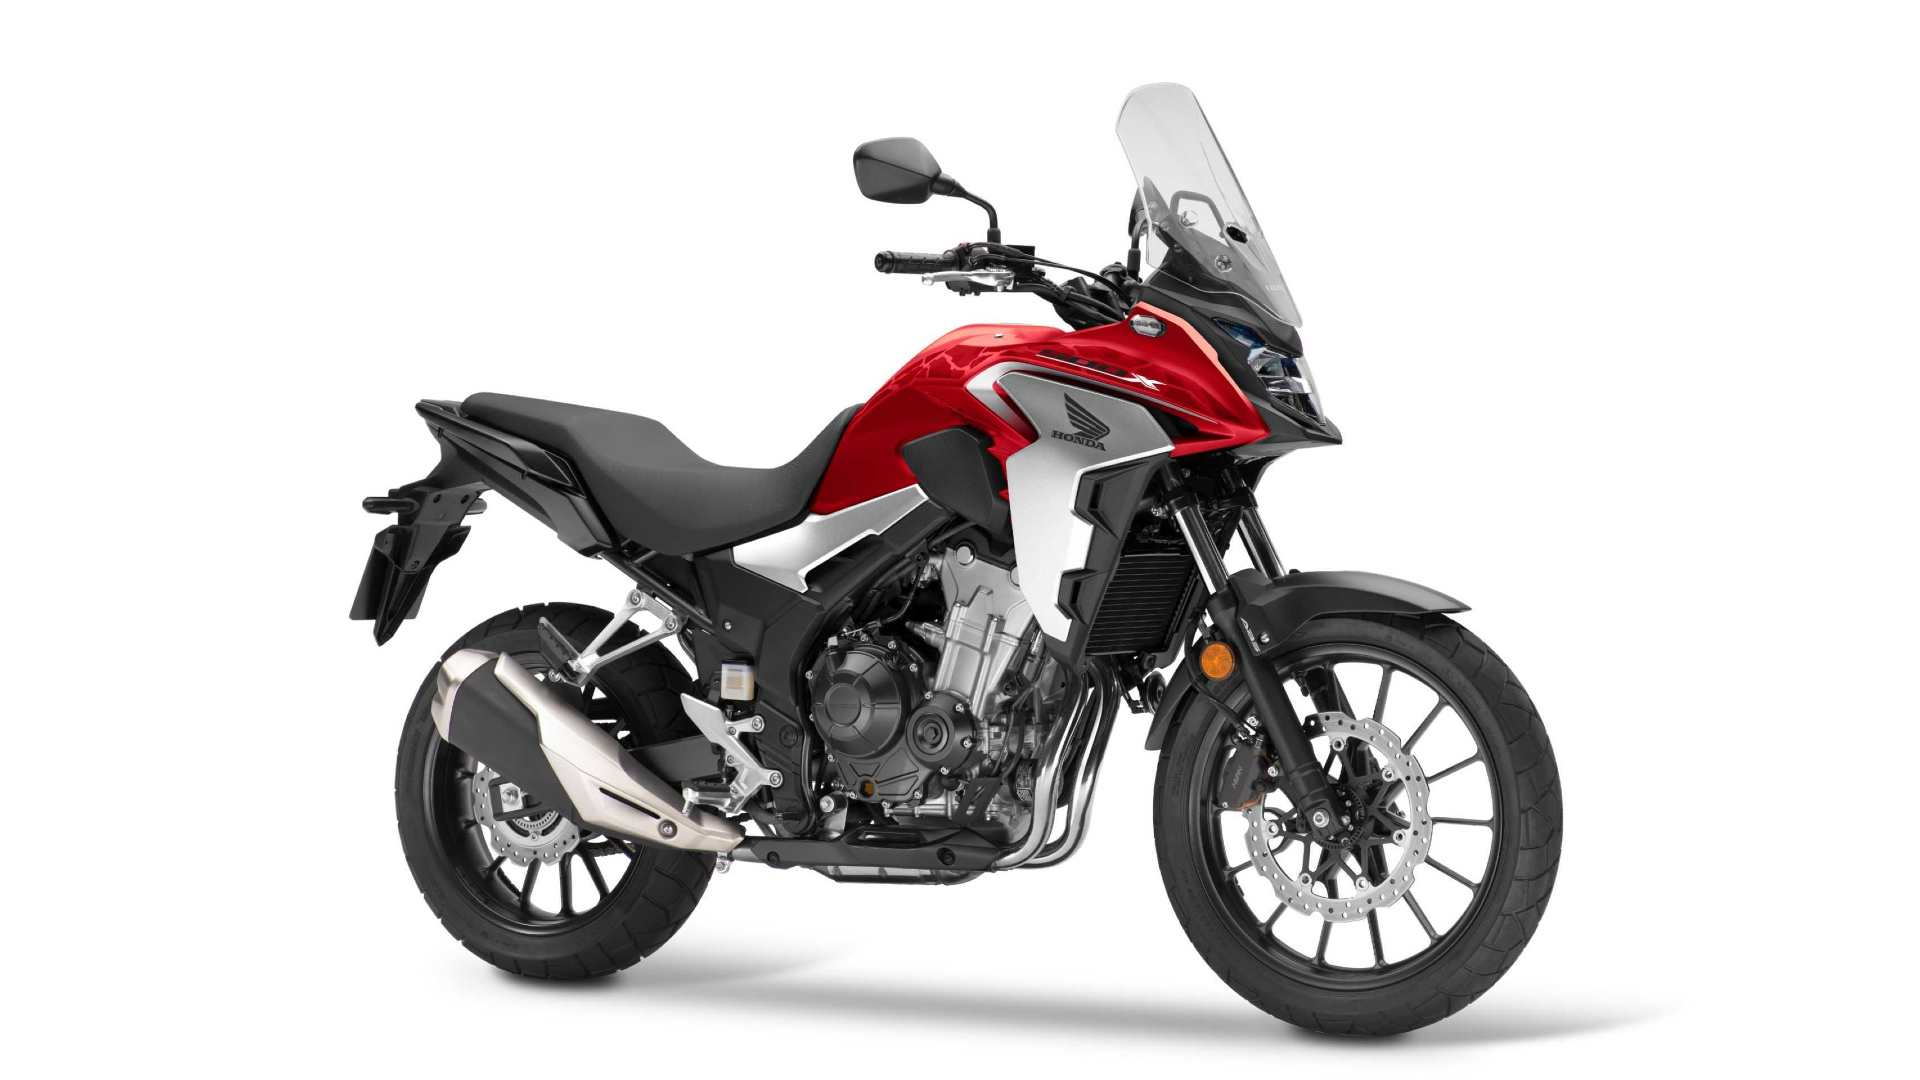 Honda CB500X launched in India at Rs 6.87 lakh, arrives in CKD form with two colour options